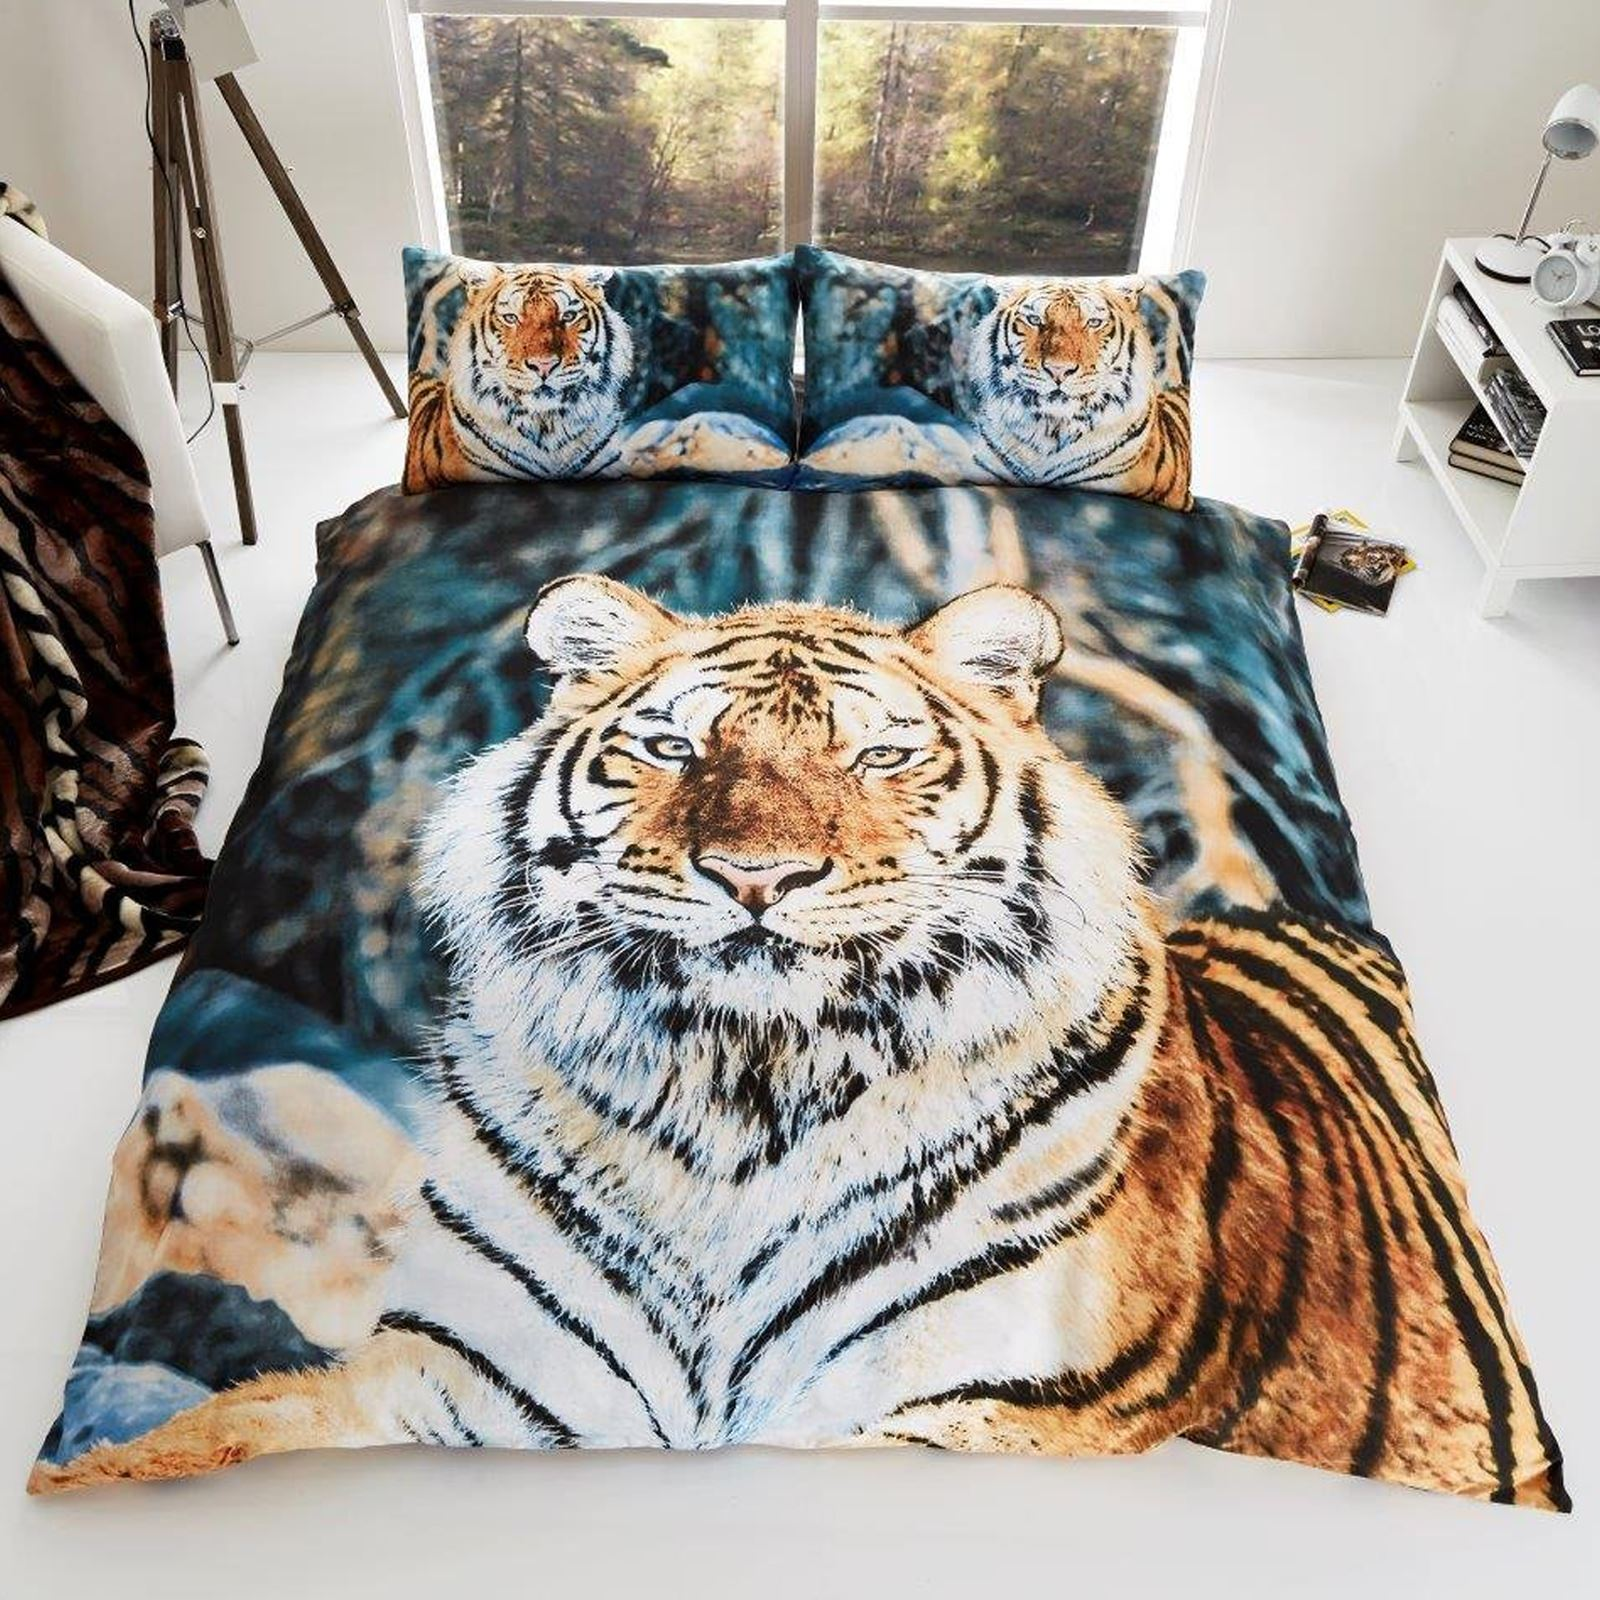 tigre 3d housse de couette king size animal sauvage. Black Bedroom Furniture Sets. Home Design Ideas